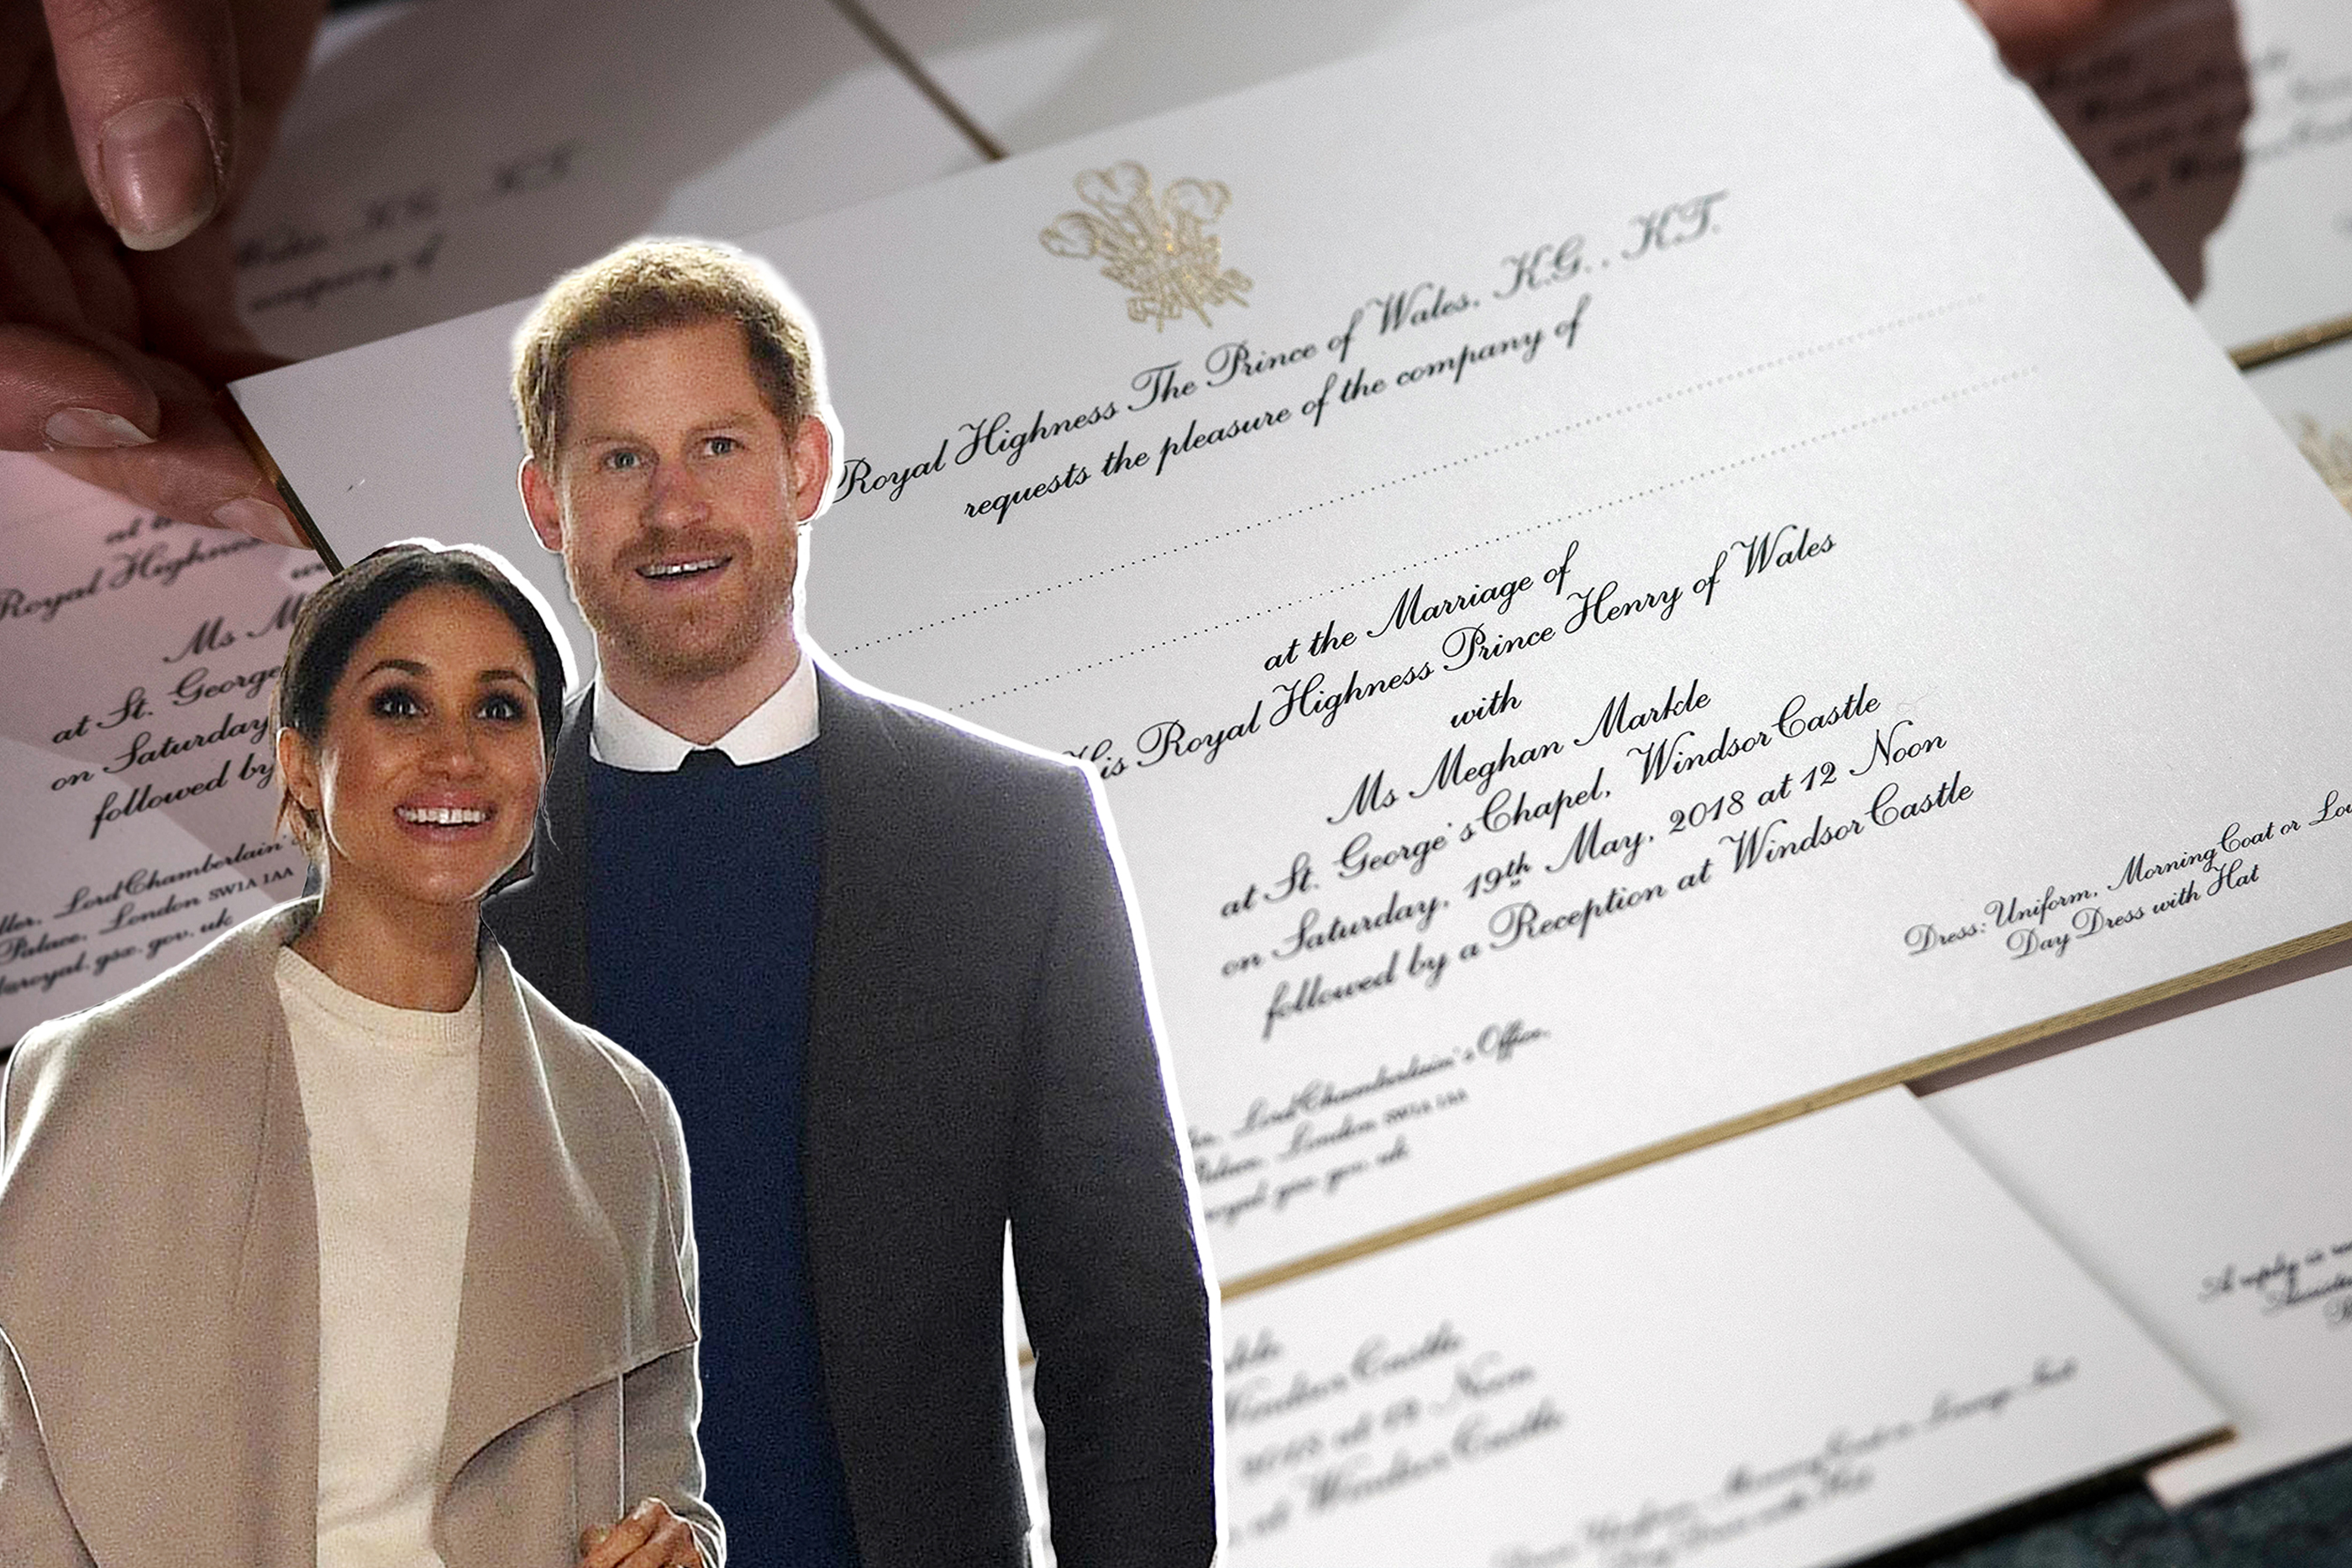 Royal Wedding How Much The Invitations Cost Money